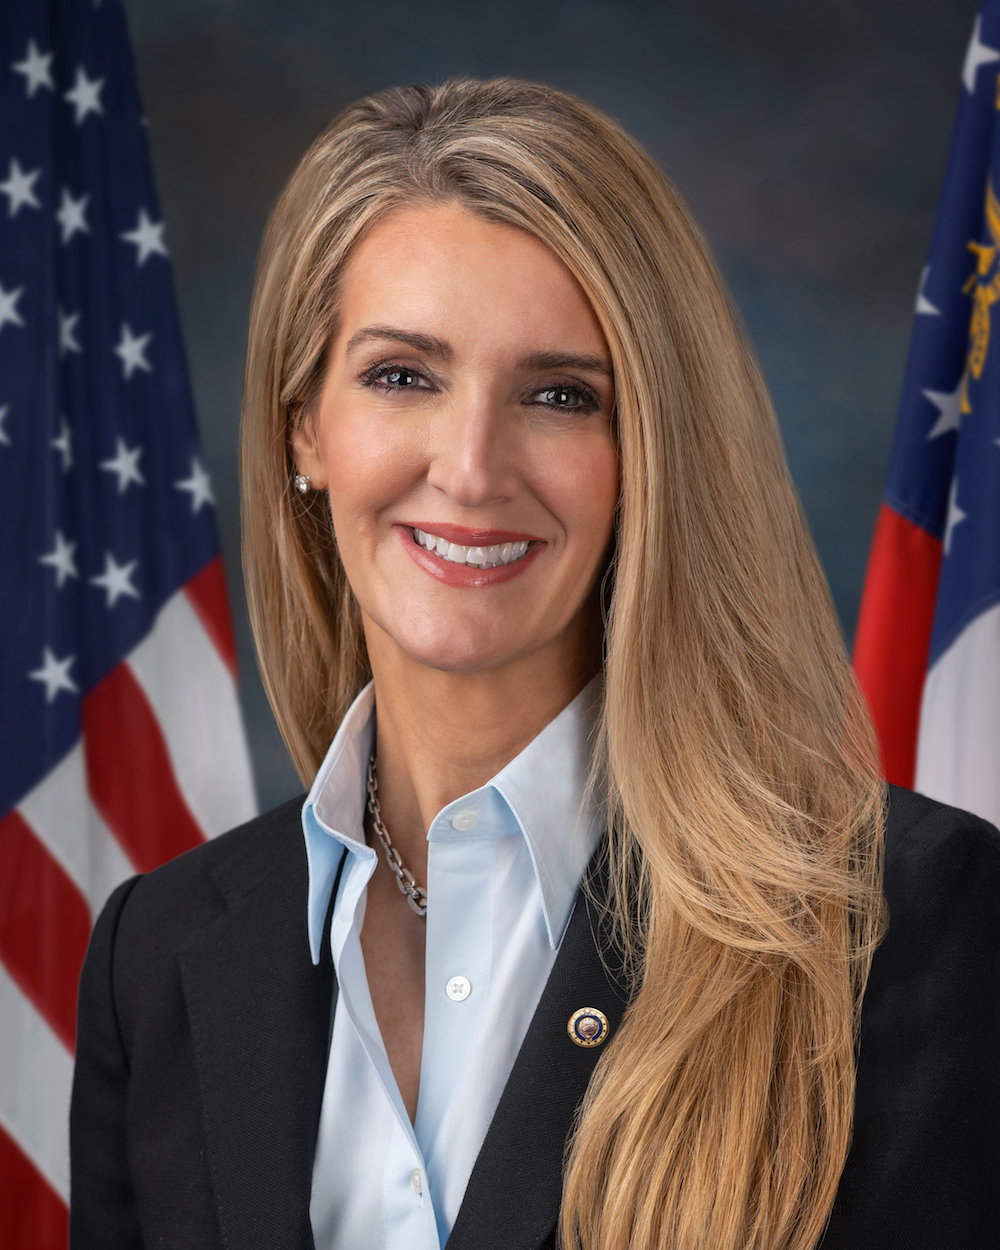 Georgia Sen. Kelly Loeffler to Dump Stocks Over Pandemic Purchase Flap